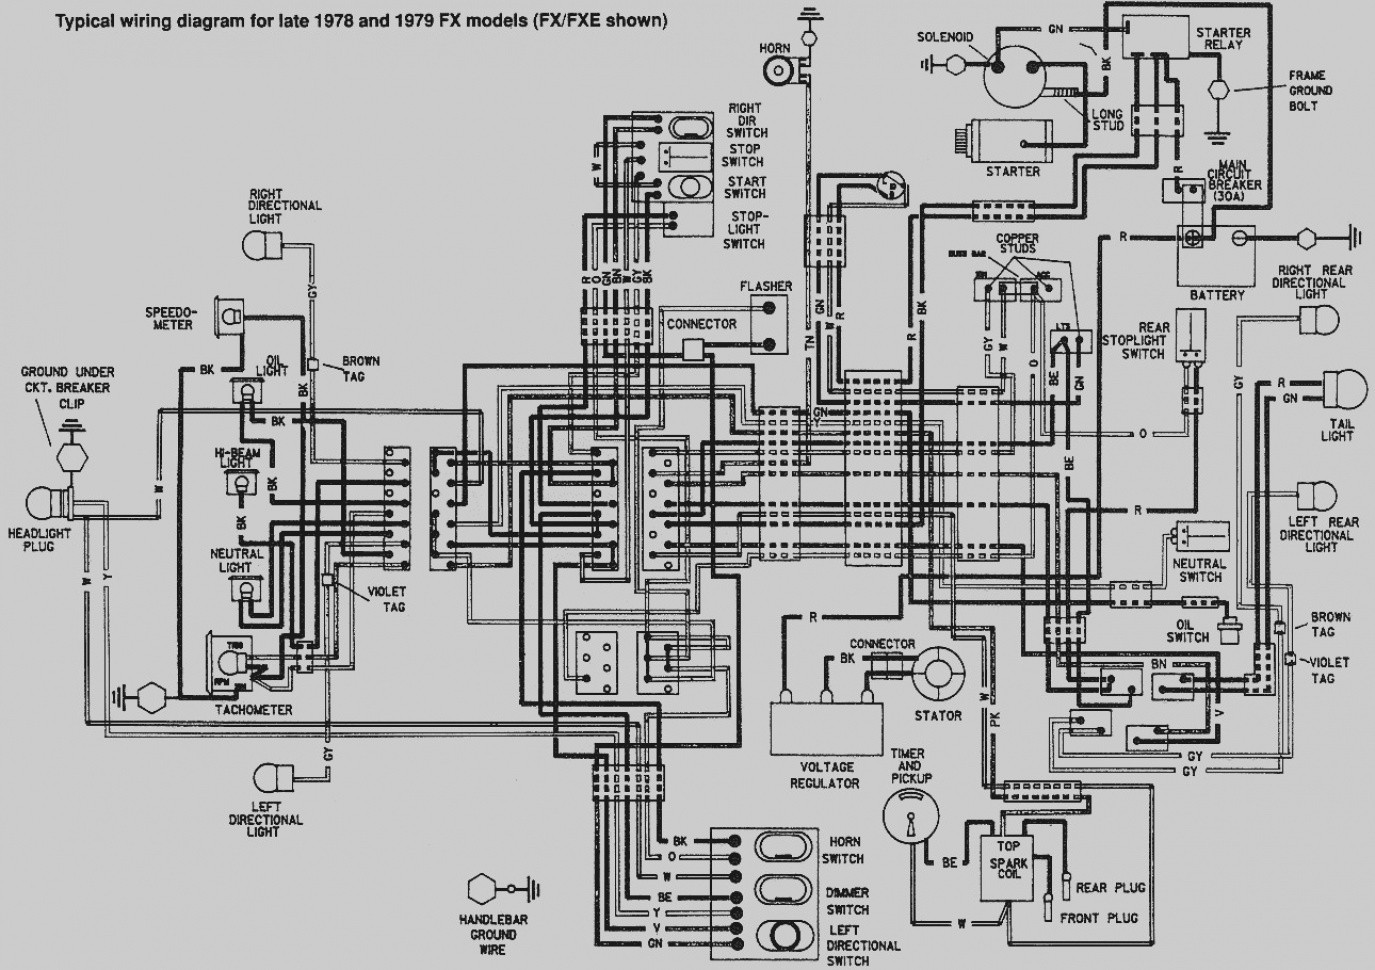 hight resolution of 2006 harley davidson wiring diagram wiring library rh 51 bloxhuette de 2006 flhtcui colors 2006 harley davidson electra glide classic